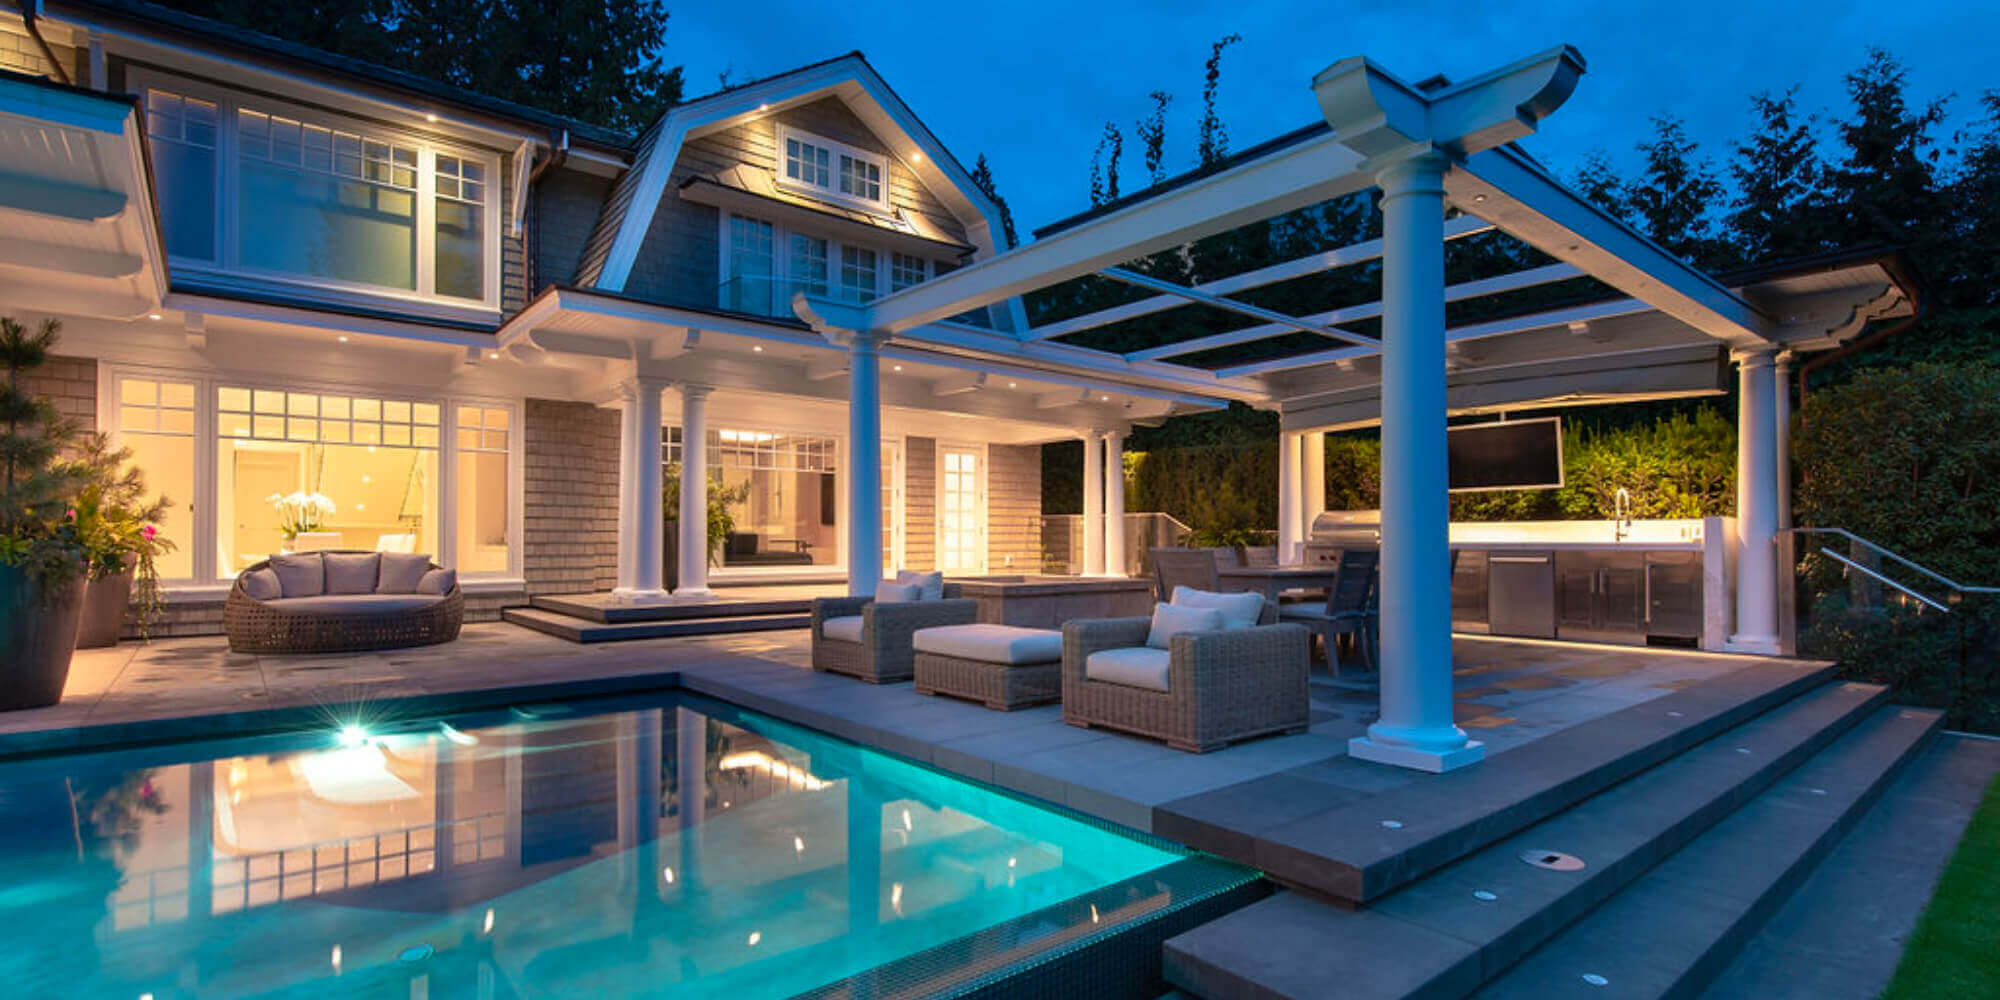 Creating Beautiful Outdoor Living Spaces since 2003